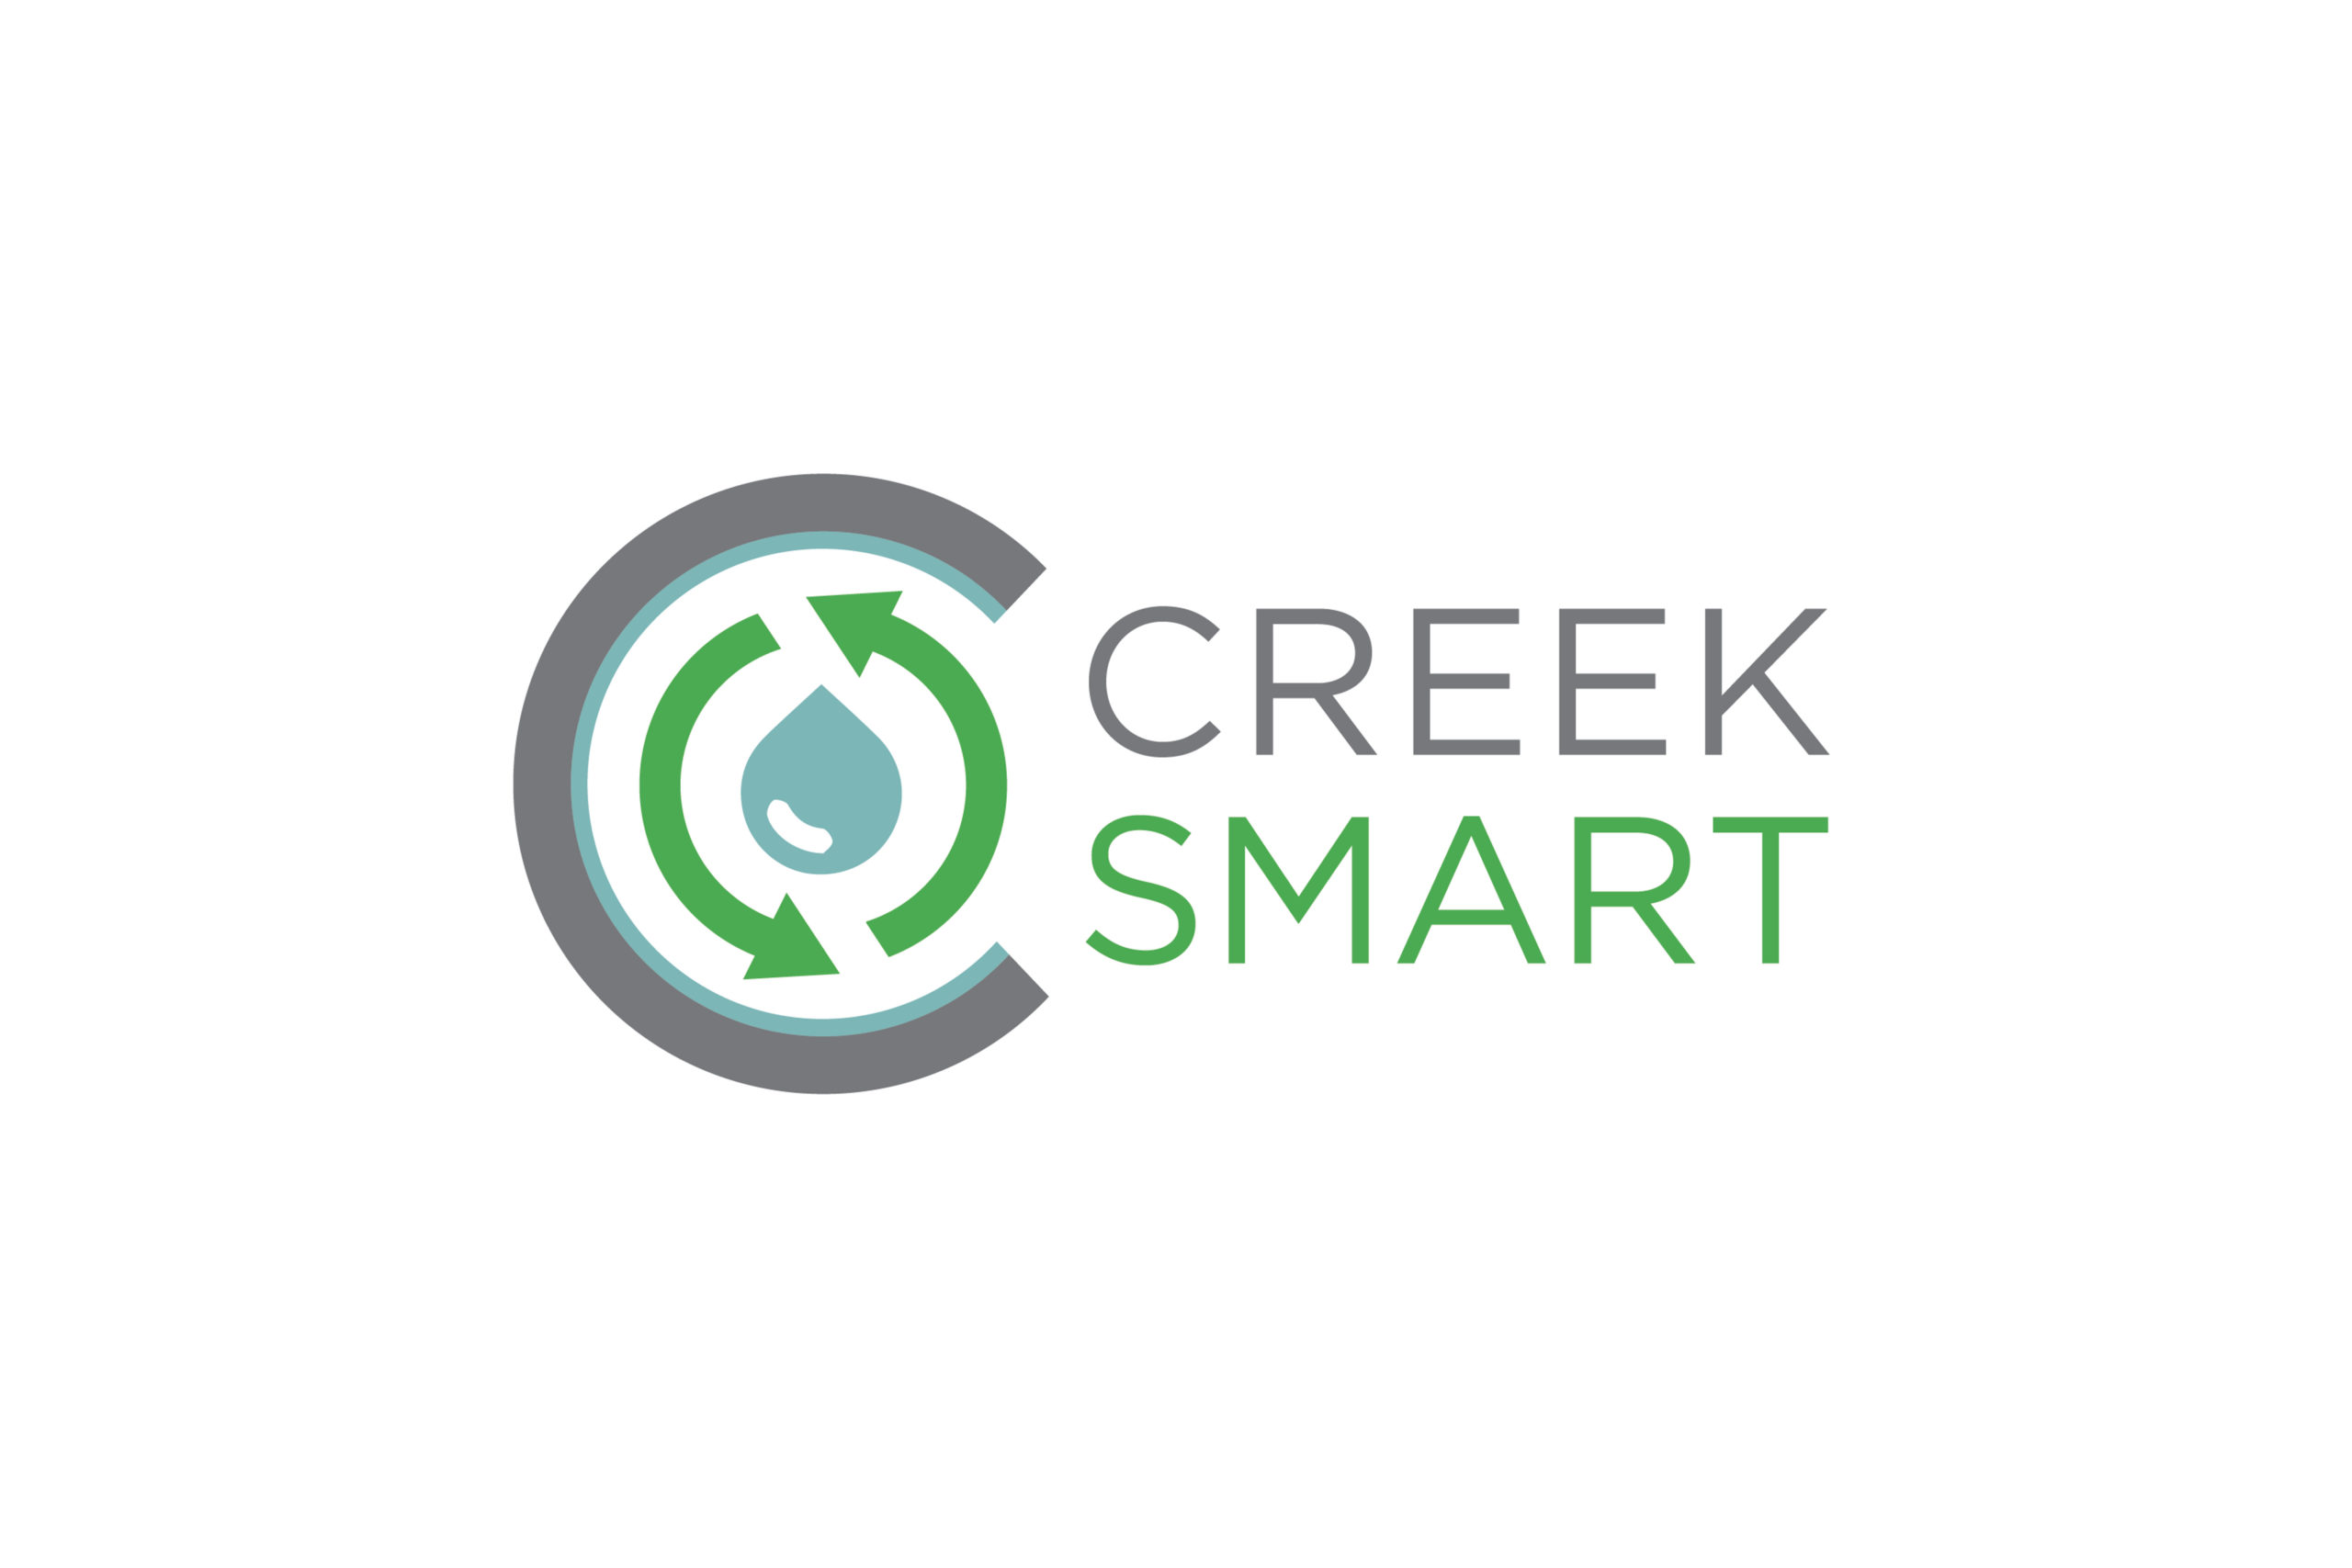 Logo design by Virtual Apiary for Creek Smart